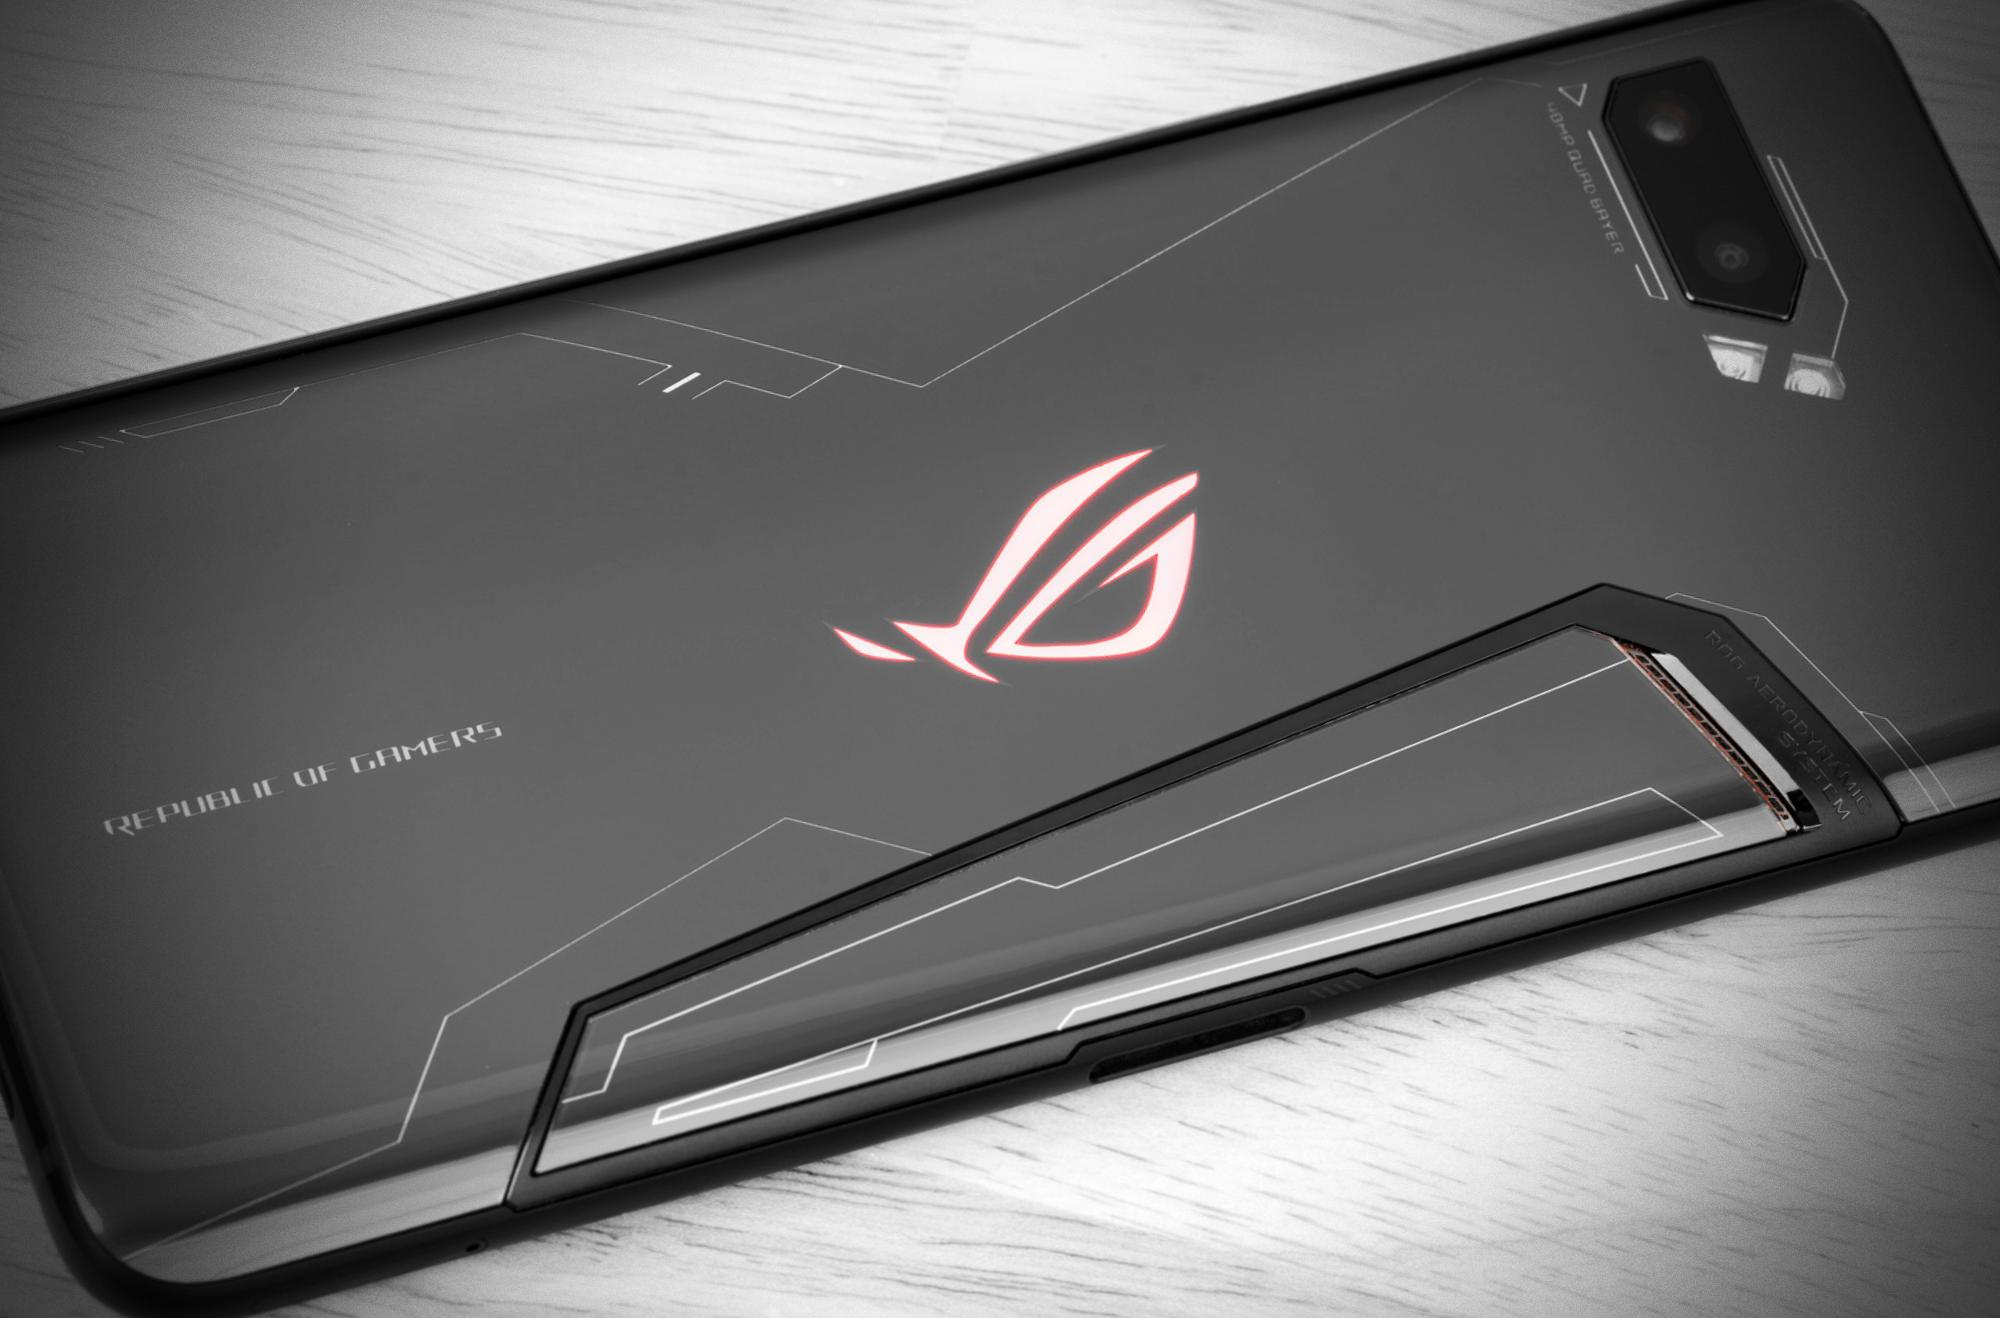 Mobile gaming in 120FPS? The ROG Phone II can run these games in high FPS.